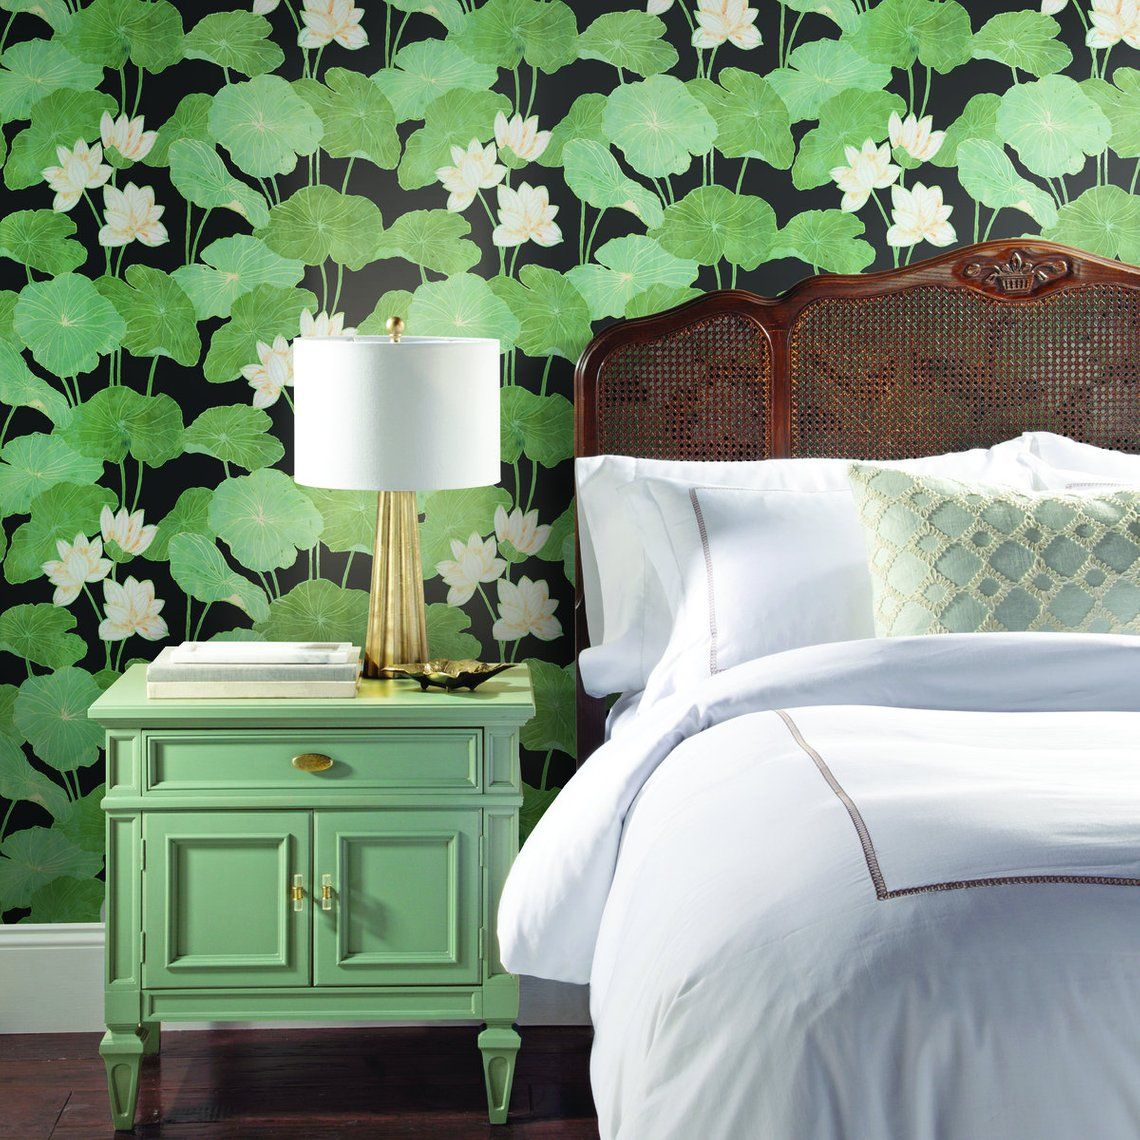 Roommates Lily Pads Peel And Stick Black And Green Wallpaper Etsy Home Decor Peel And Stick Wallpaper Affordable Decor